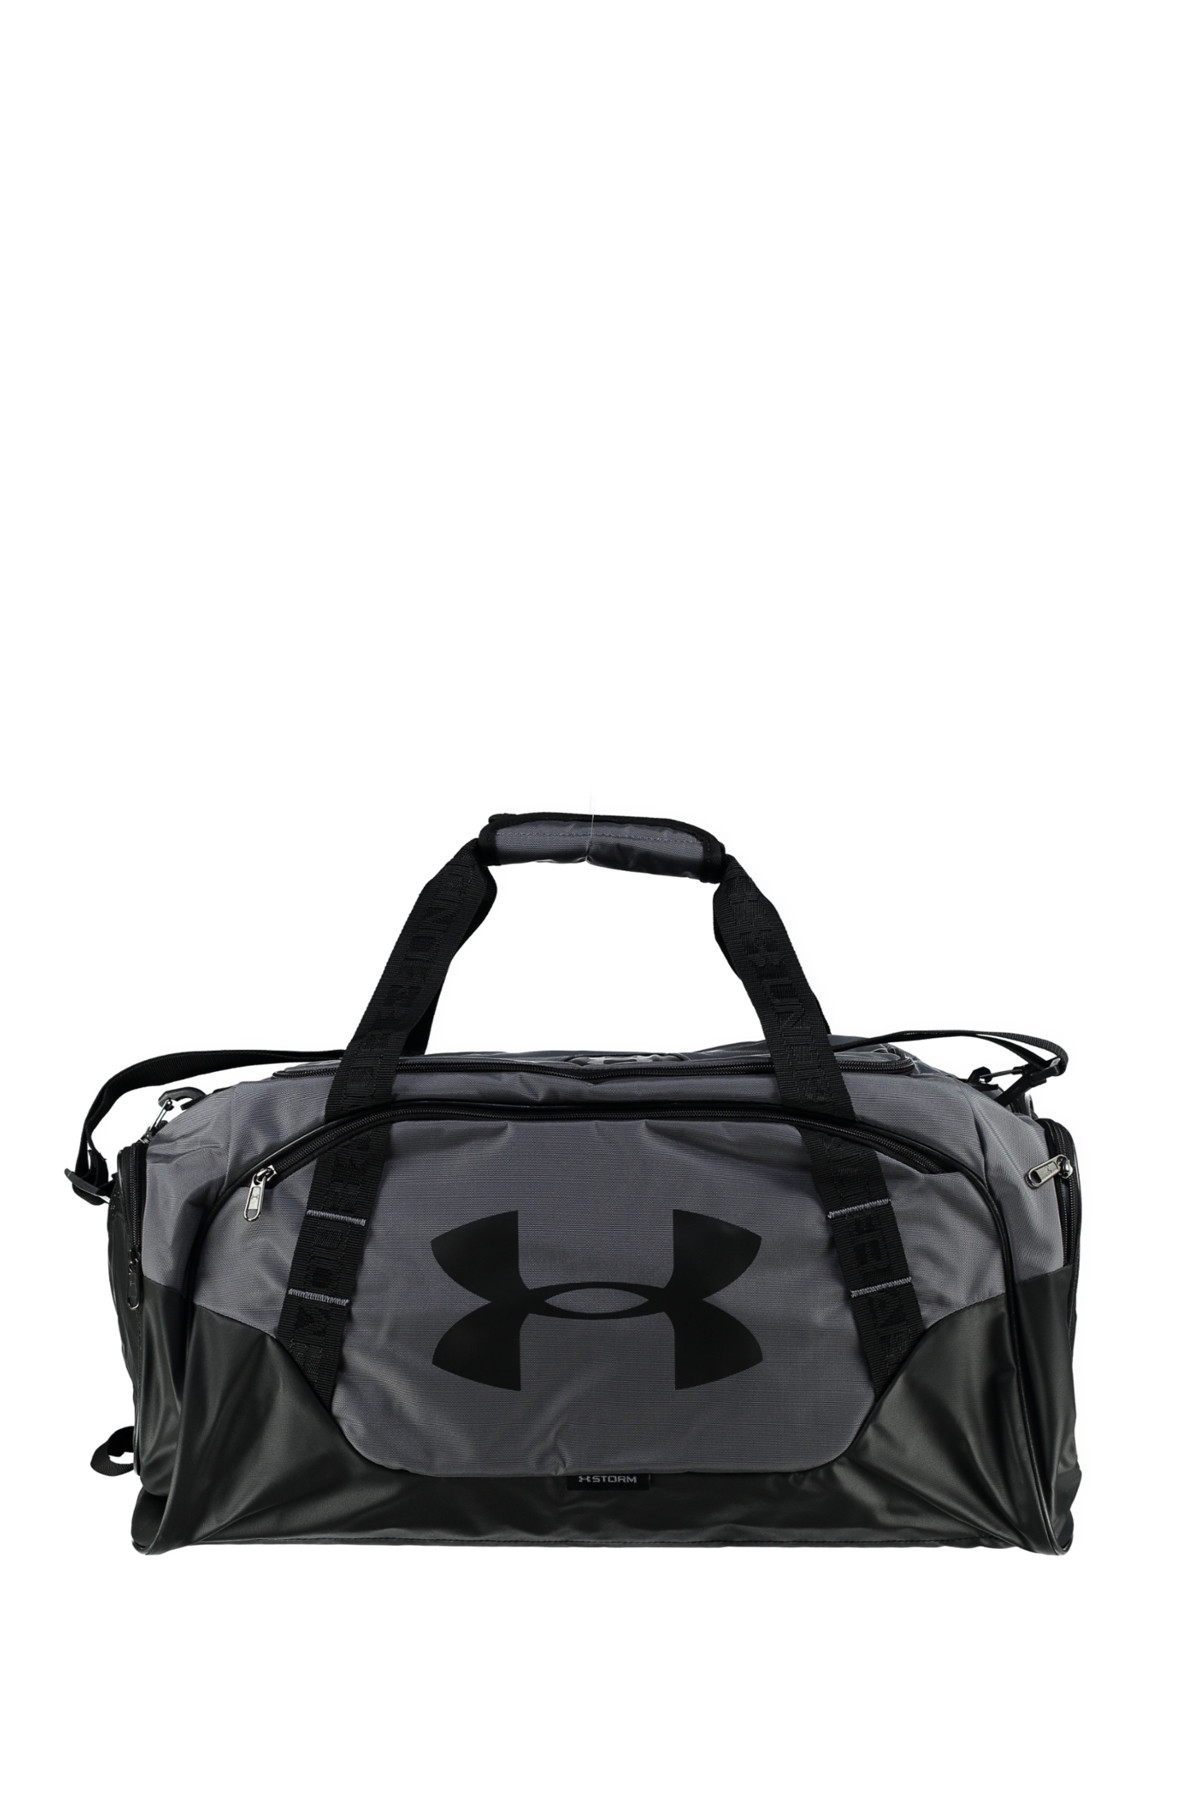 under armour unisex gri spor çanta - ua undeniable duffle 3.0 md -